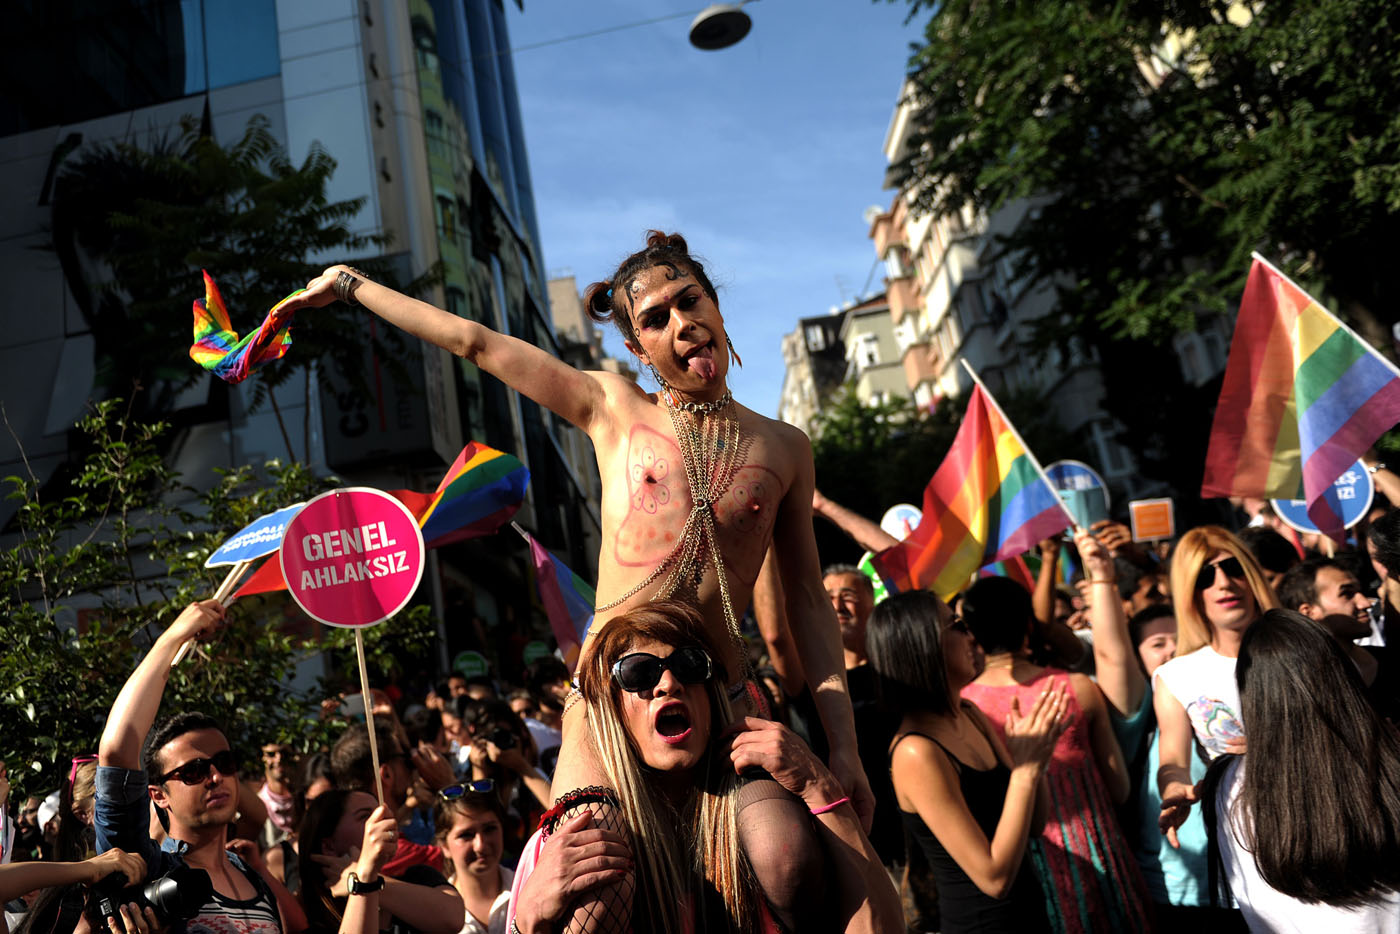 Gay Istanbul is